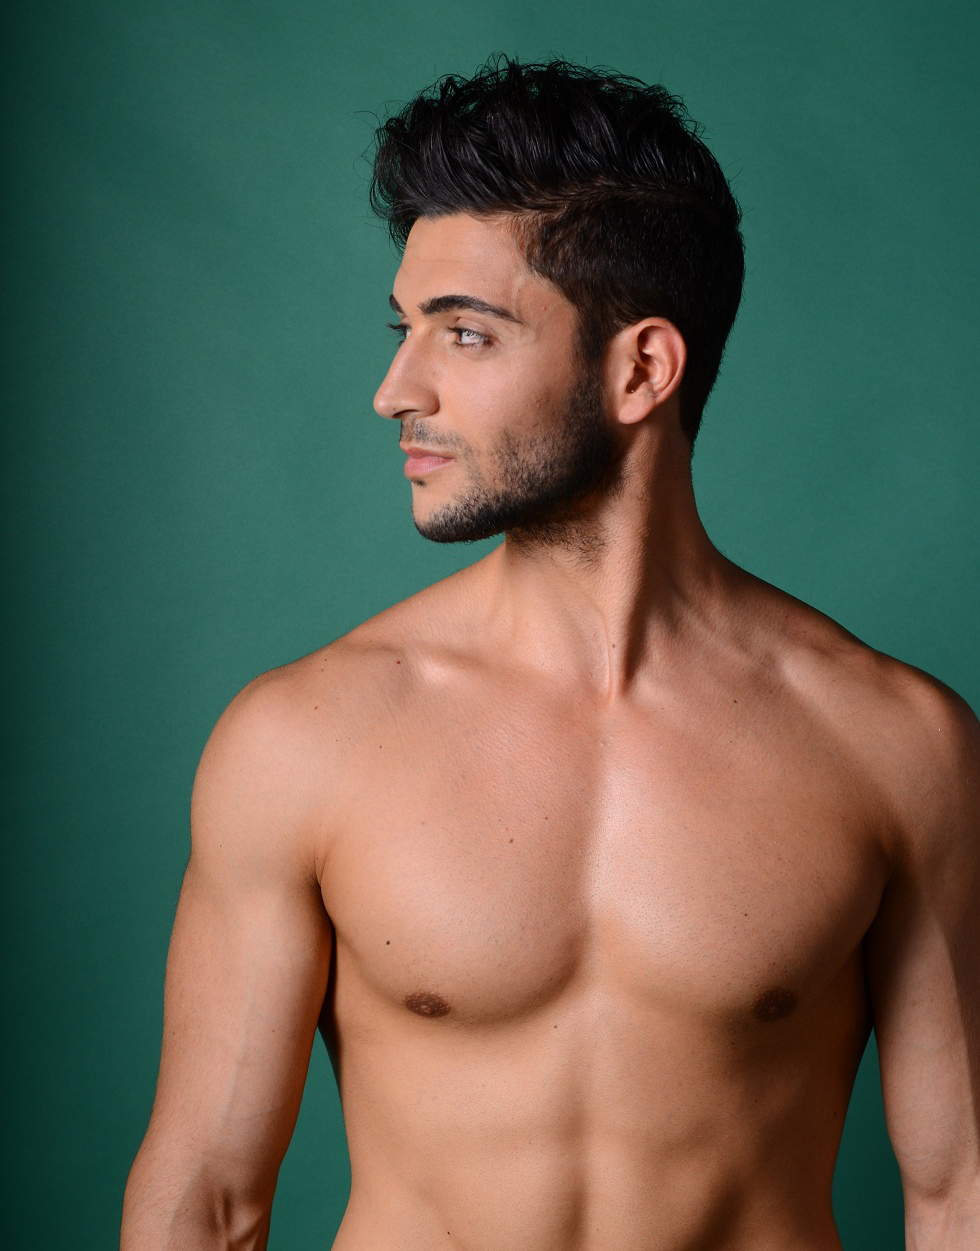 Hot indian guy